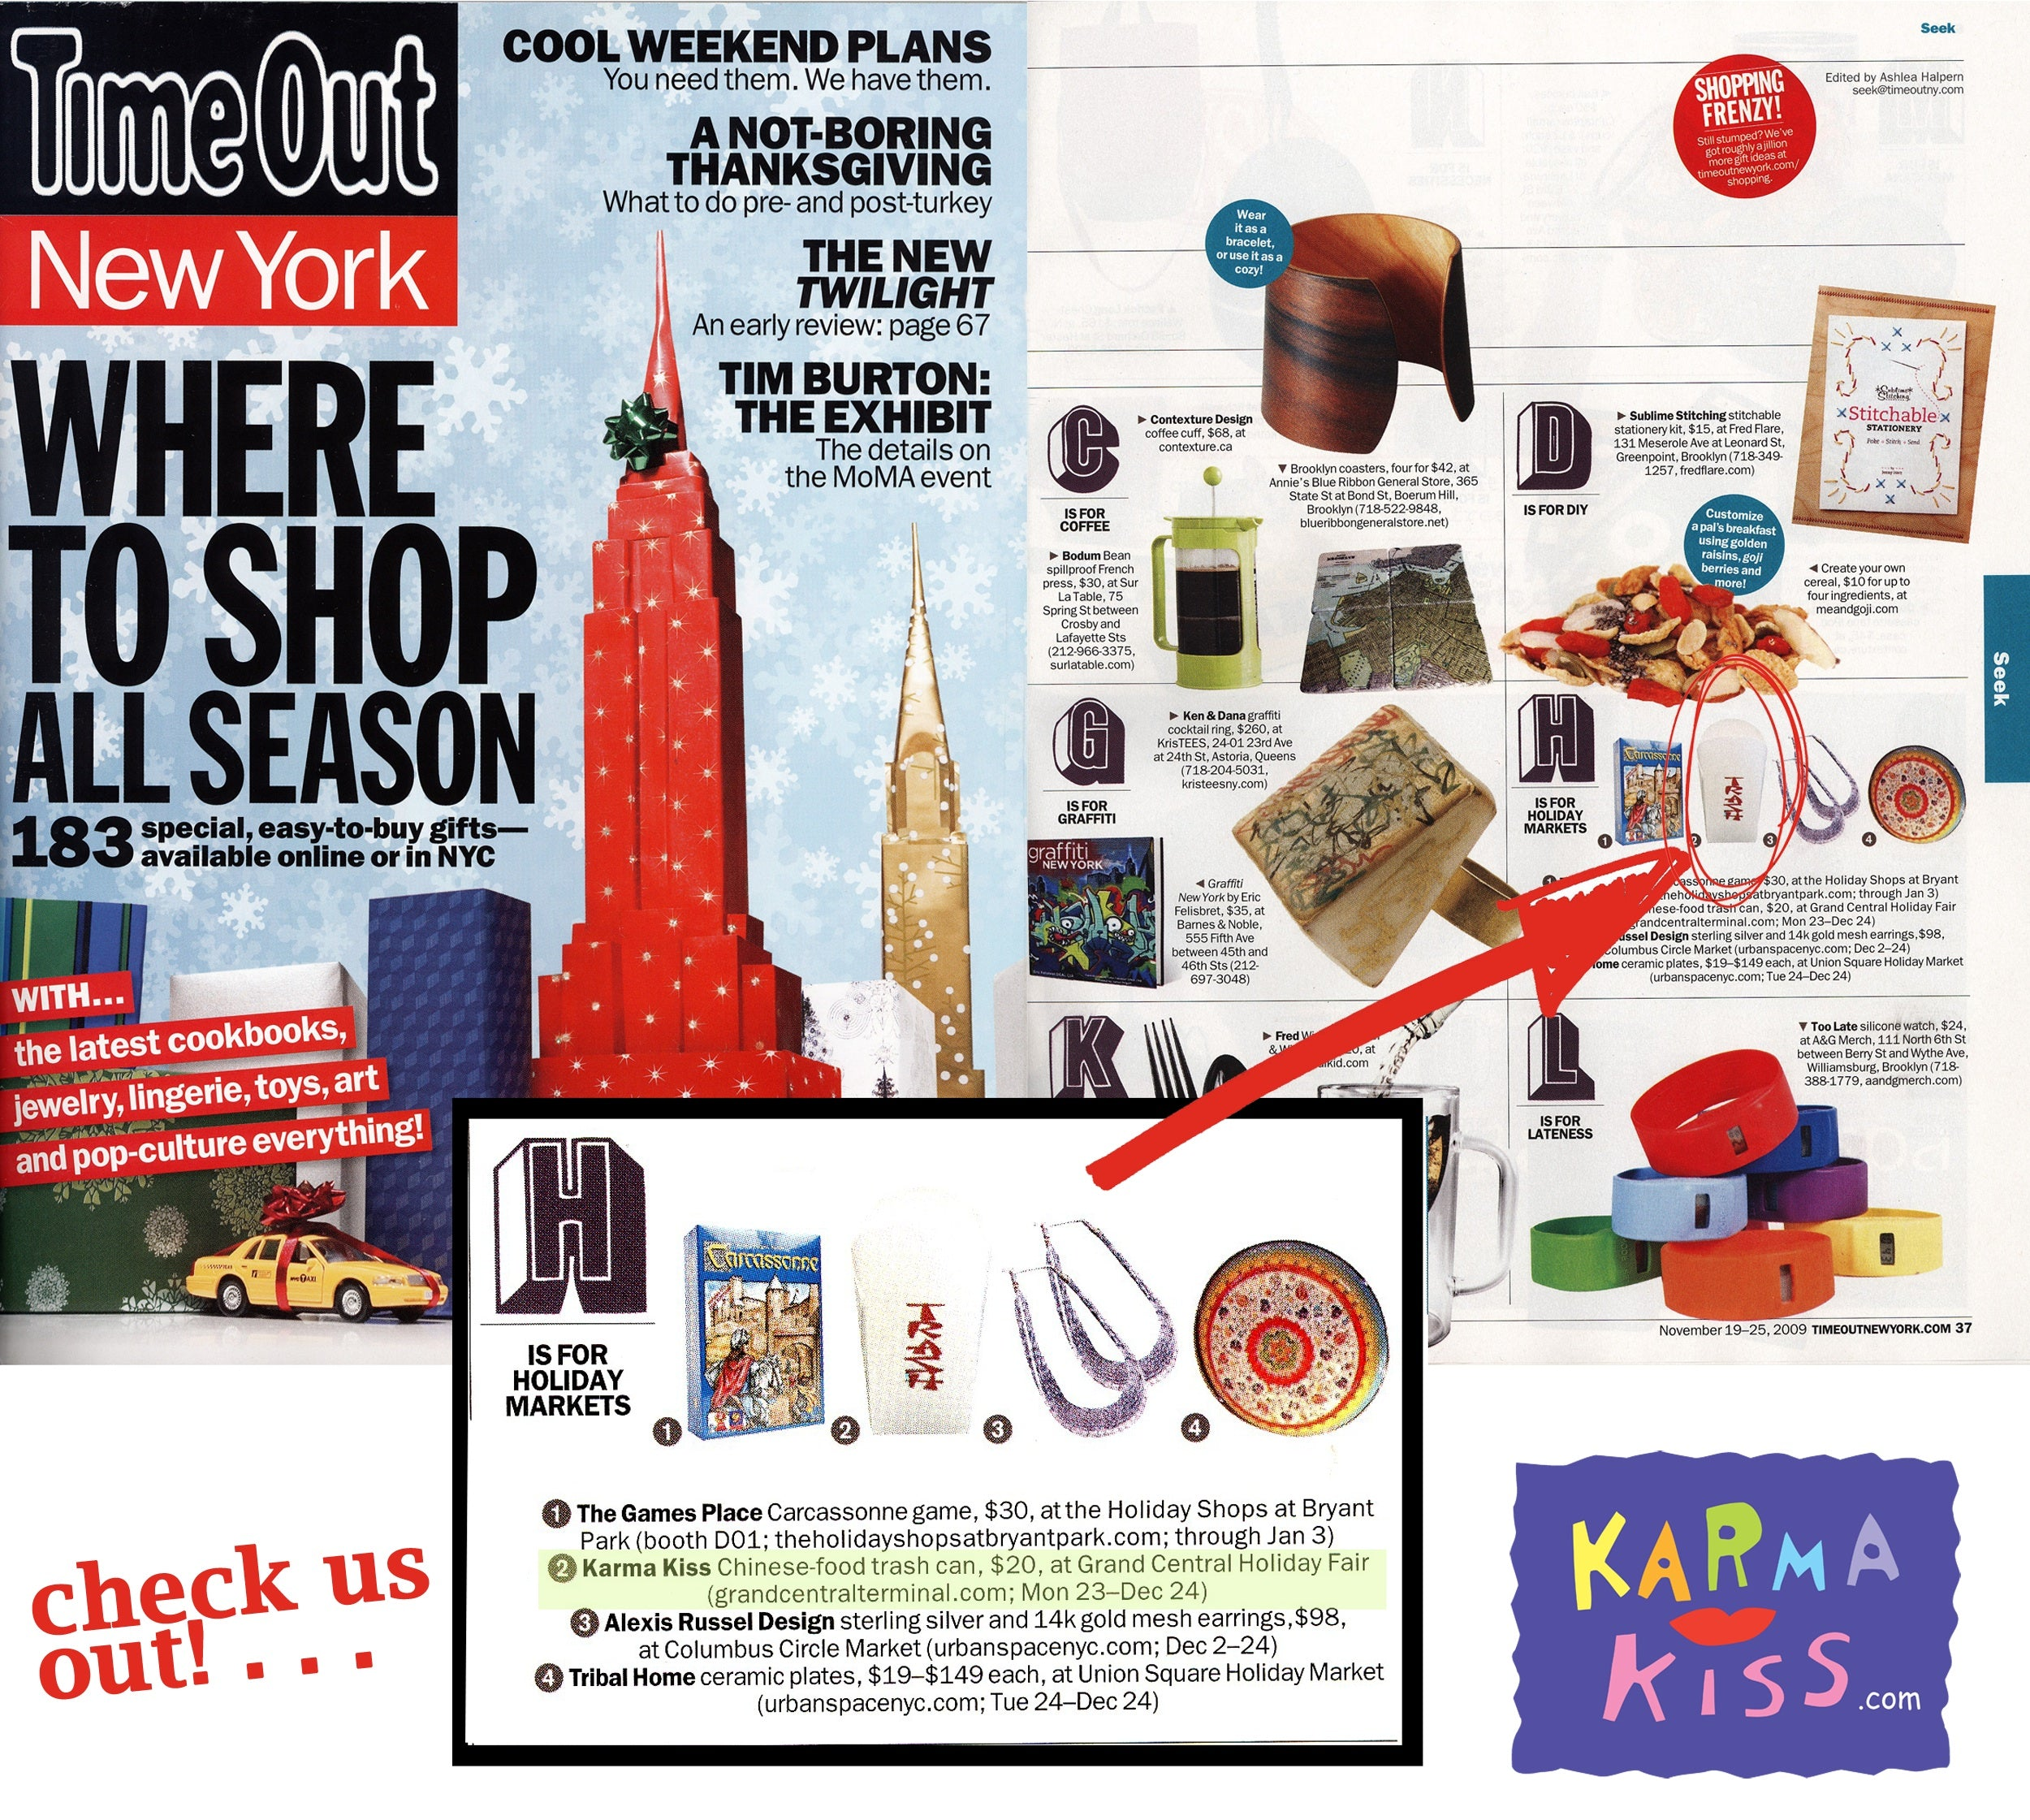 Karma Kiss Featured in Time Out New York